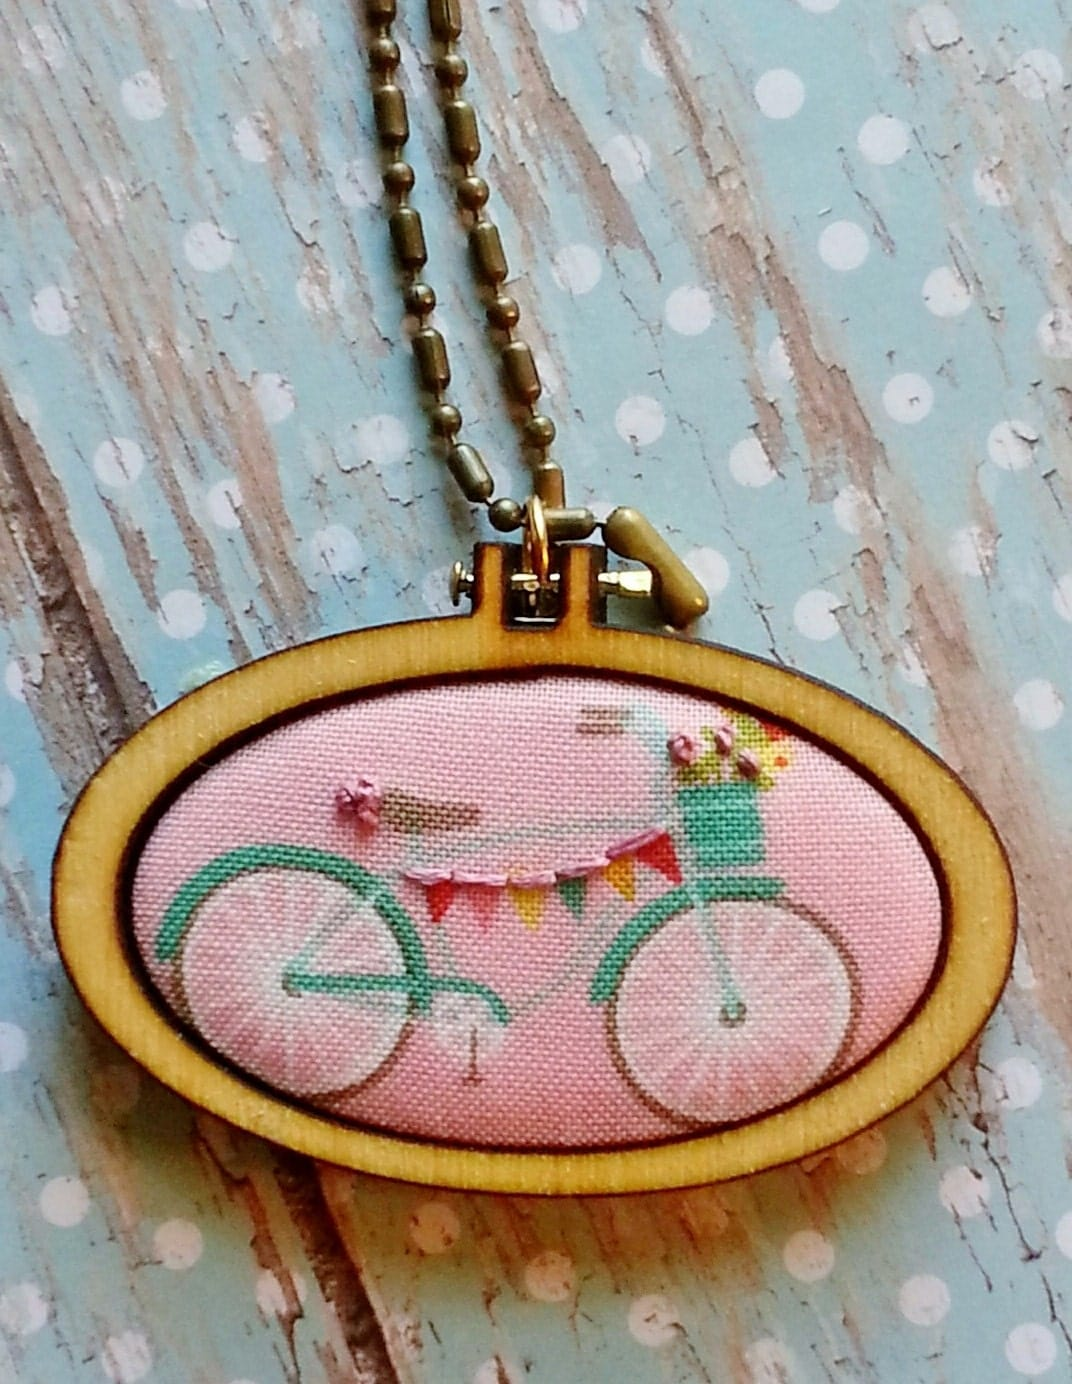 Bicycle mini hoop wide oval pendant bike flowers for Just my style personalized jewelry studio